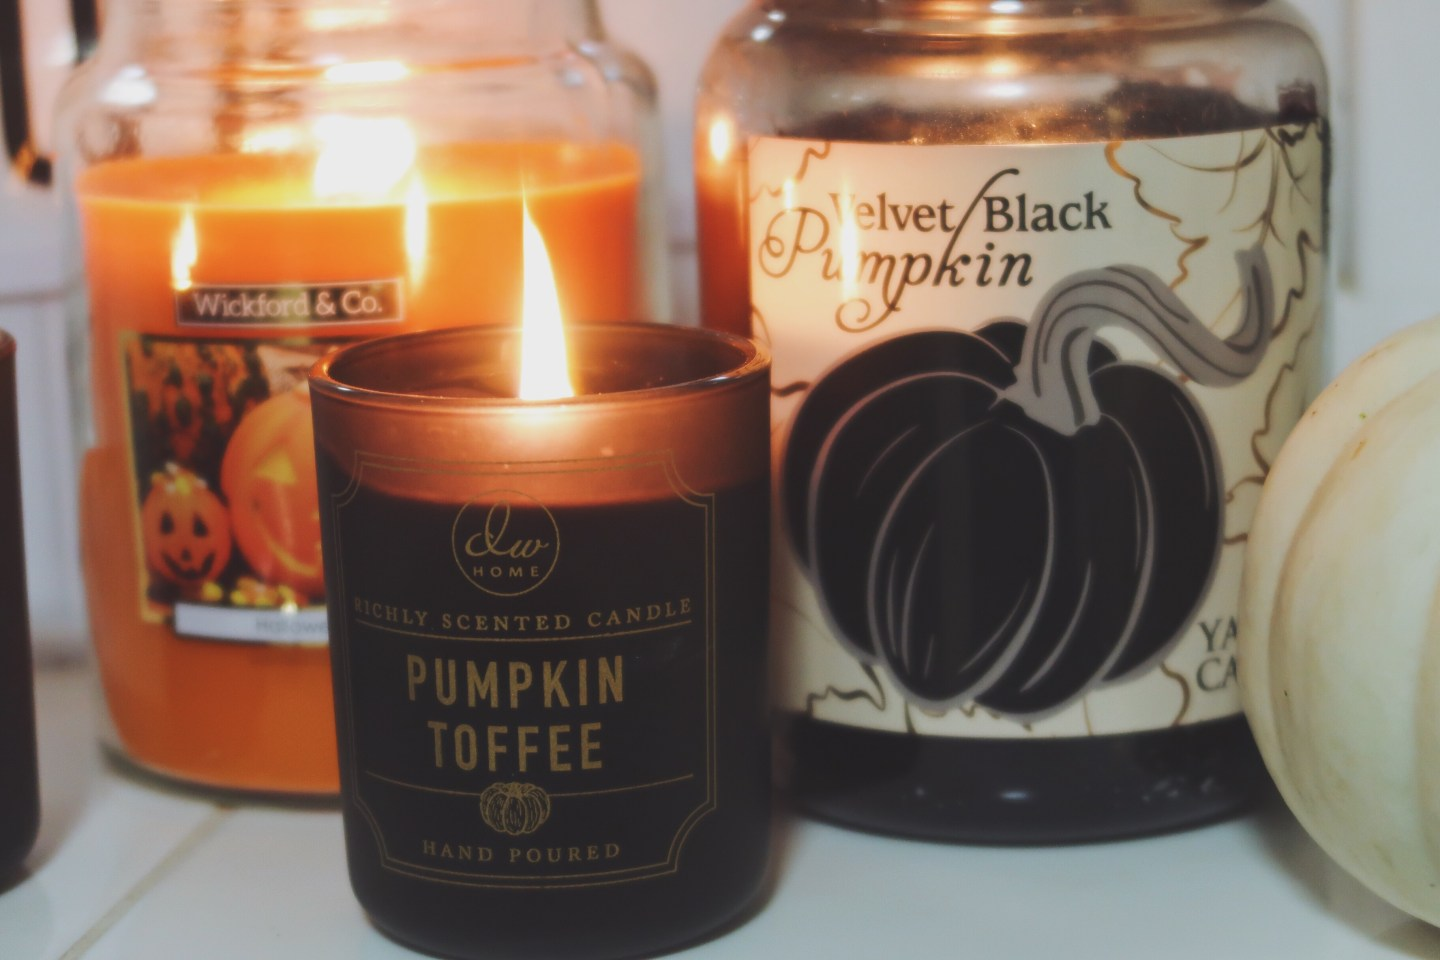 My favourite Halloween candles